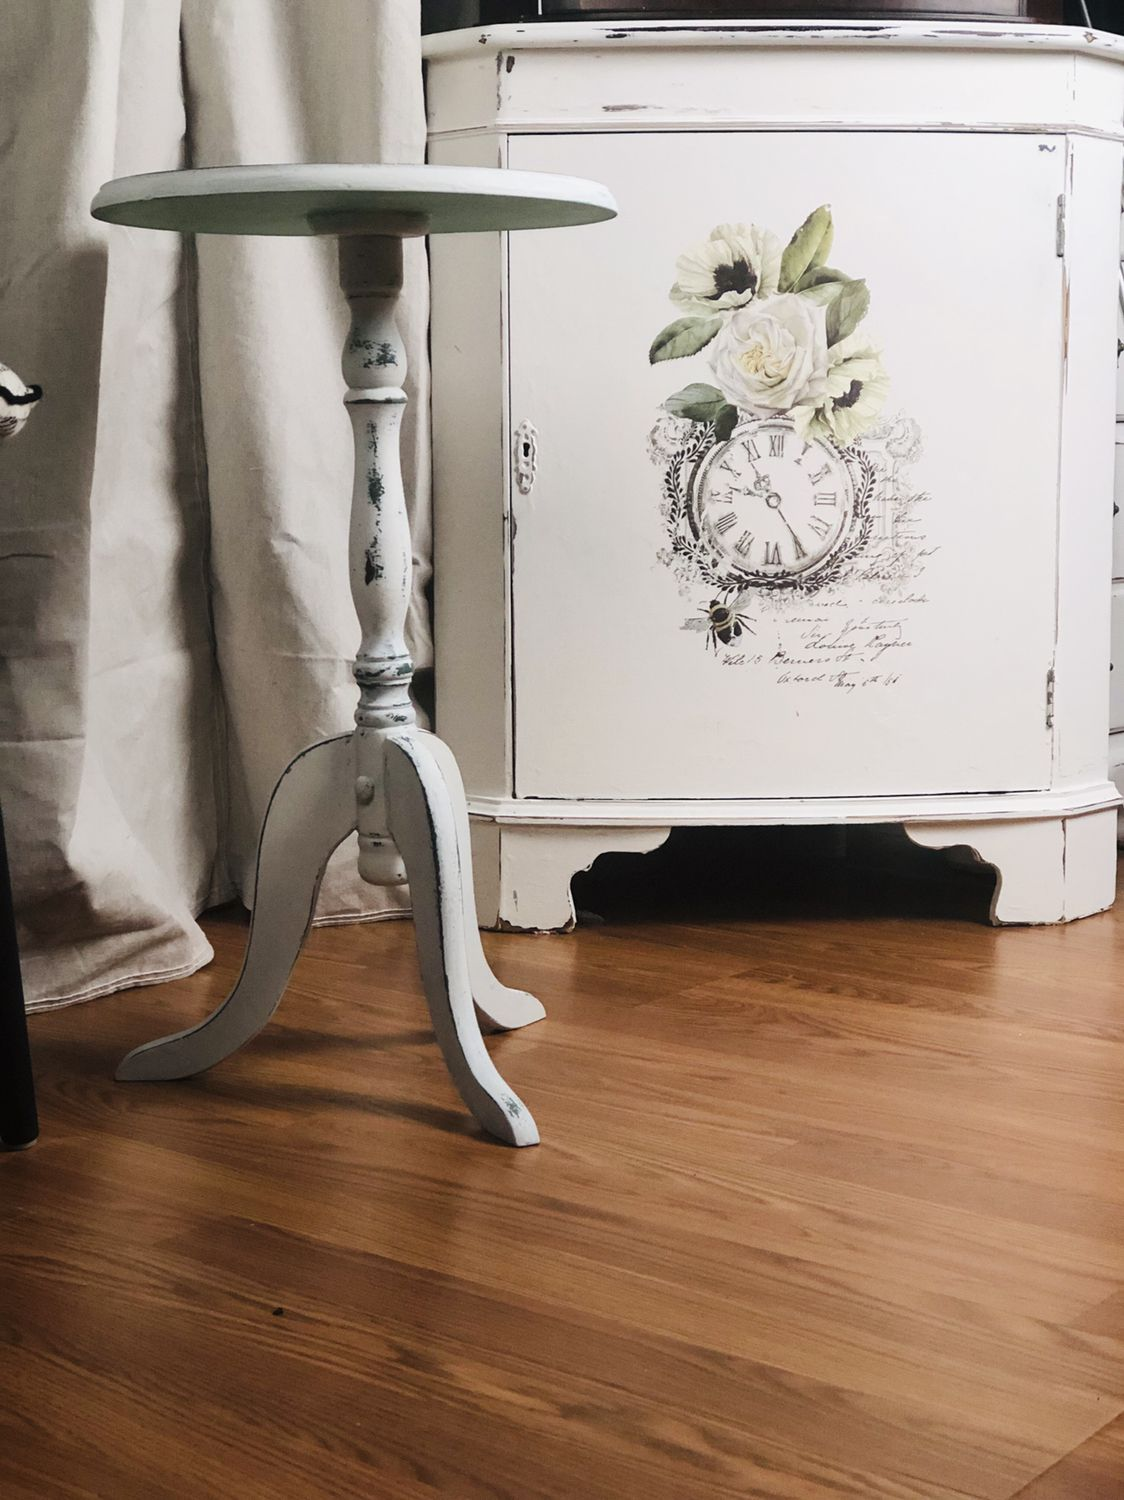 Spindle Leg Table With Sweet Pickins Milk Paint in Ocean ...